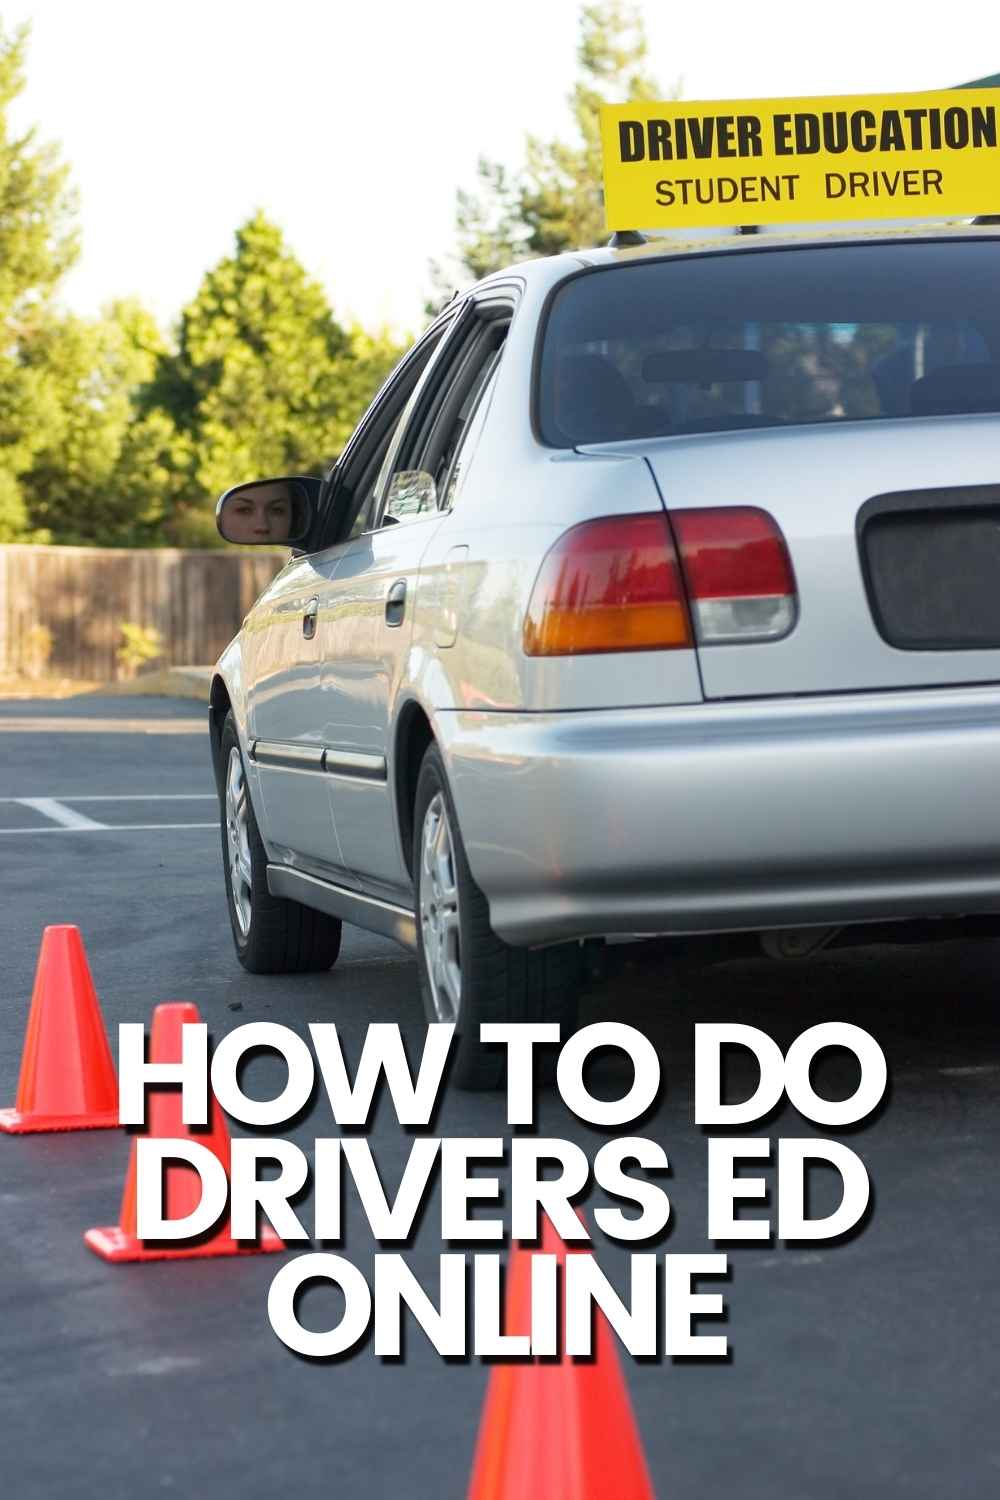 online drivers ed course